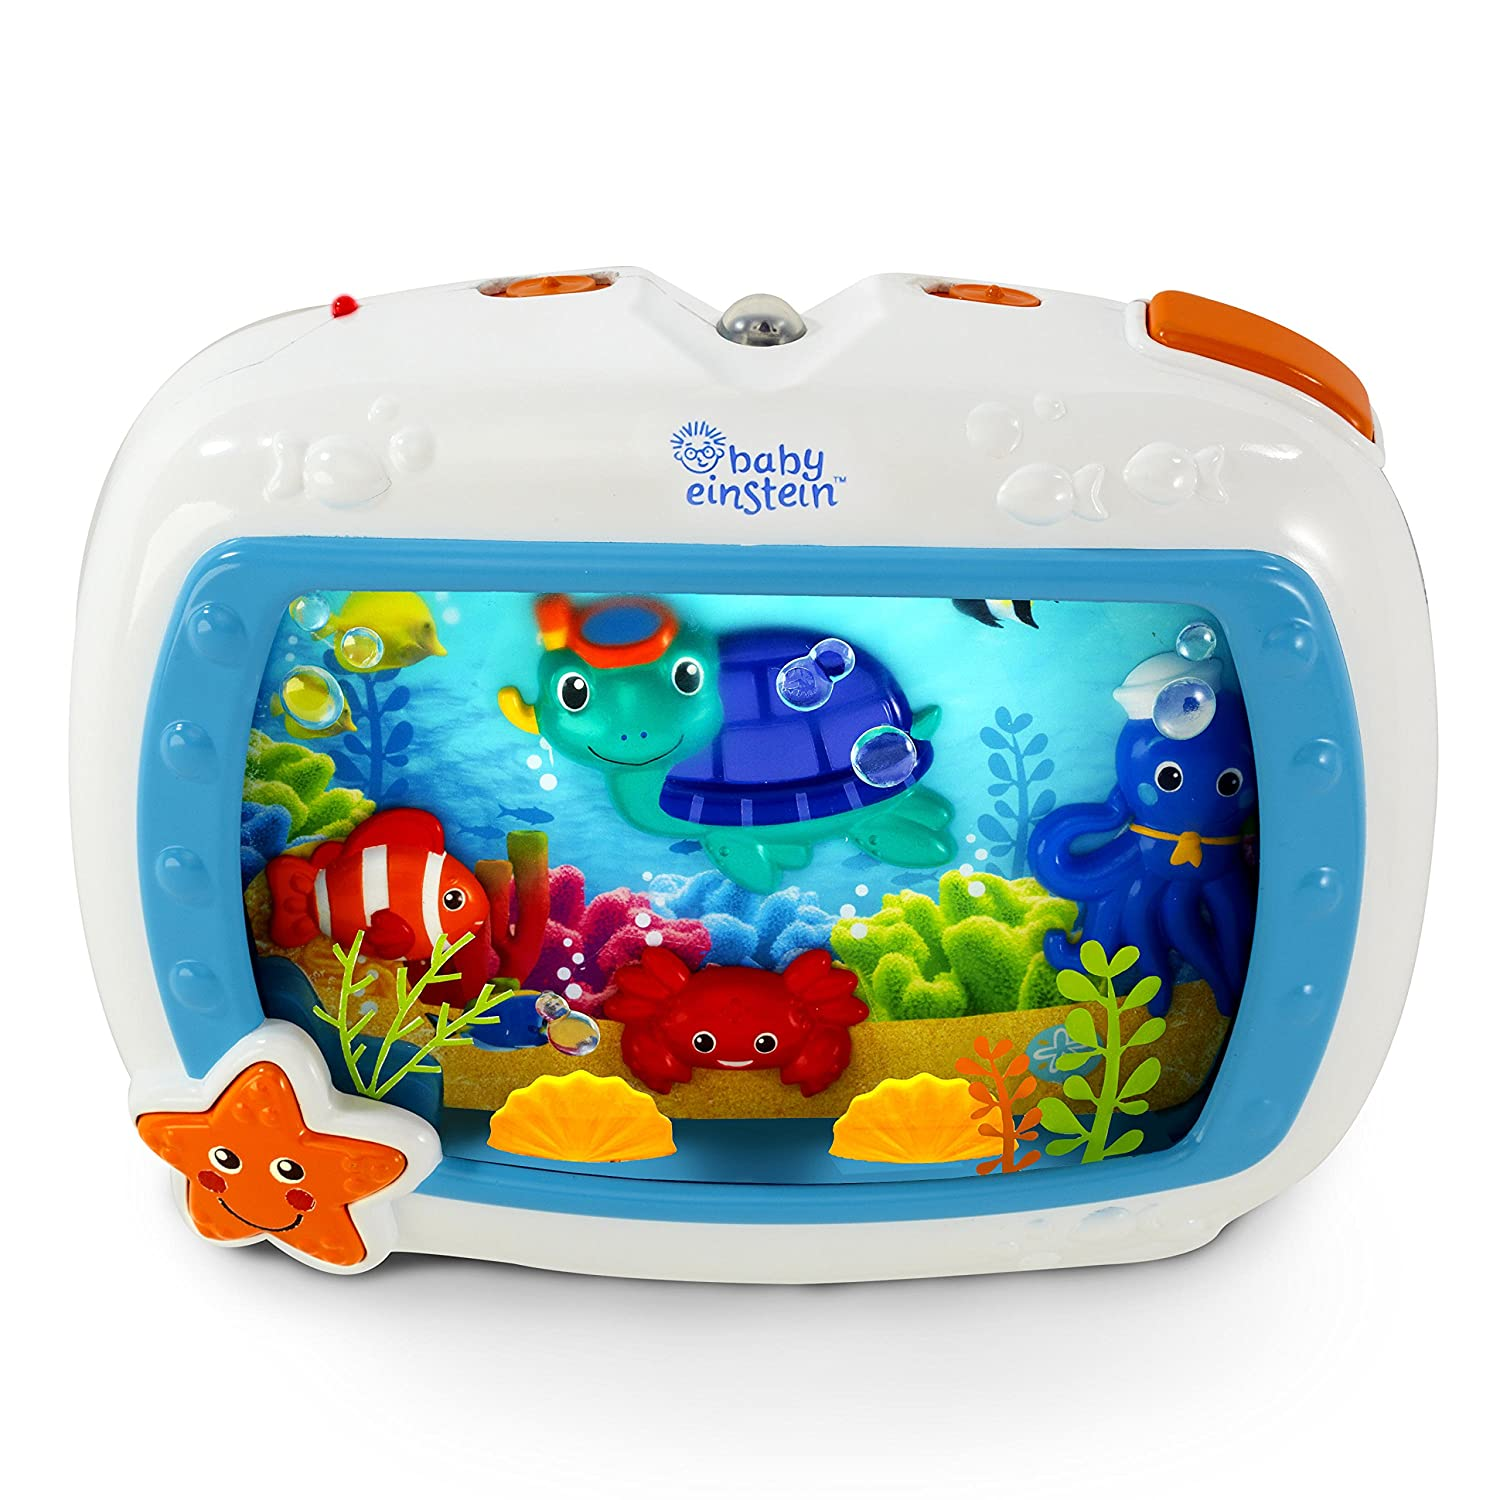 Sea Dreams Soother Cot Toy with Remote, Lights and Melodies, Newborns and up Kids II Europe B.V. 11058